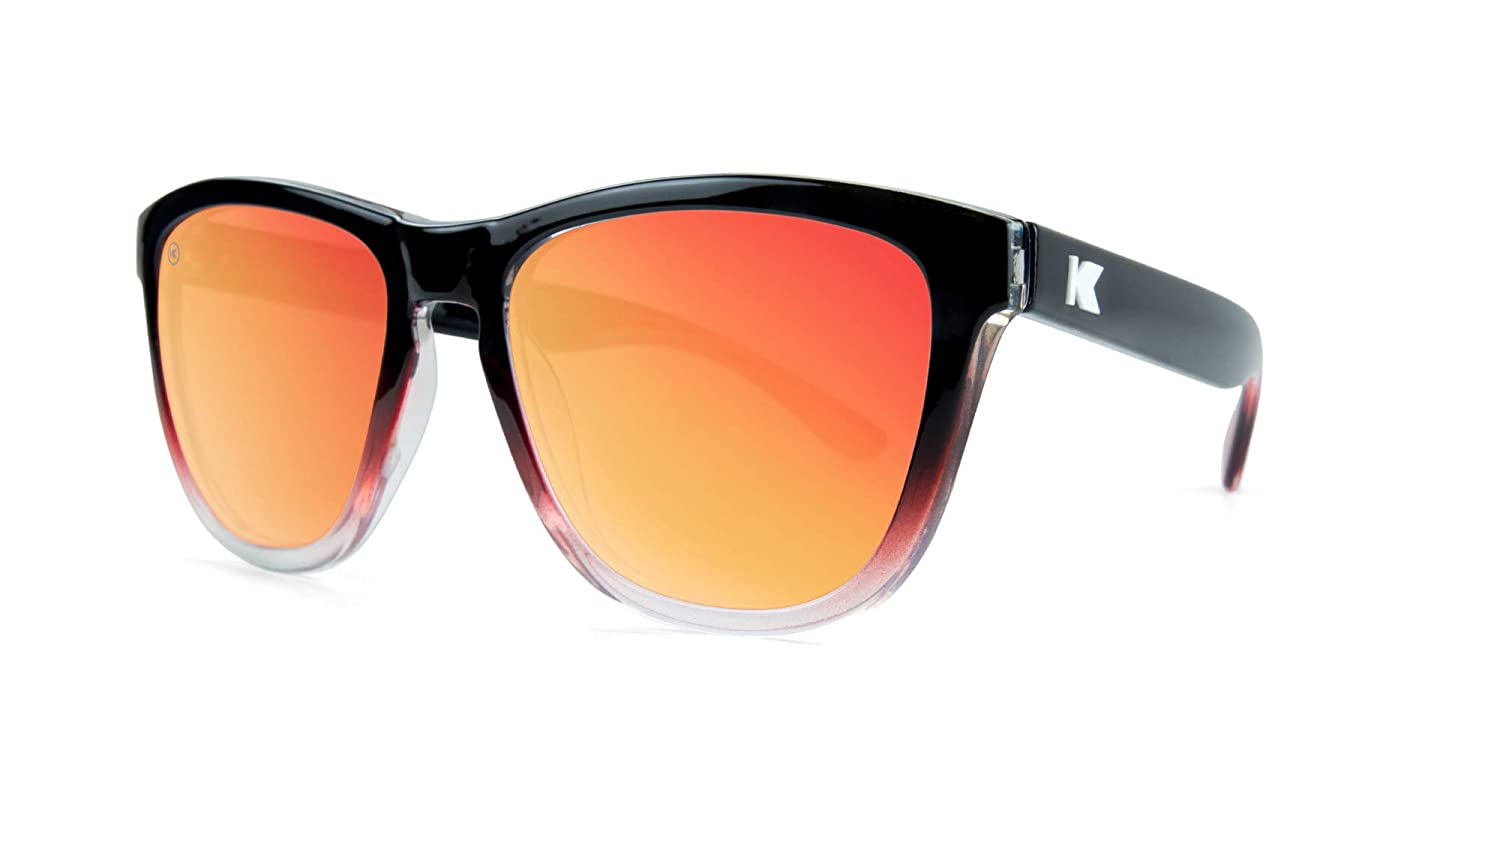 ac5eee2980 Amazon.com  Knockaround Premiums Polarized Sunglasses